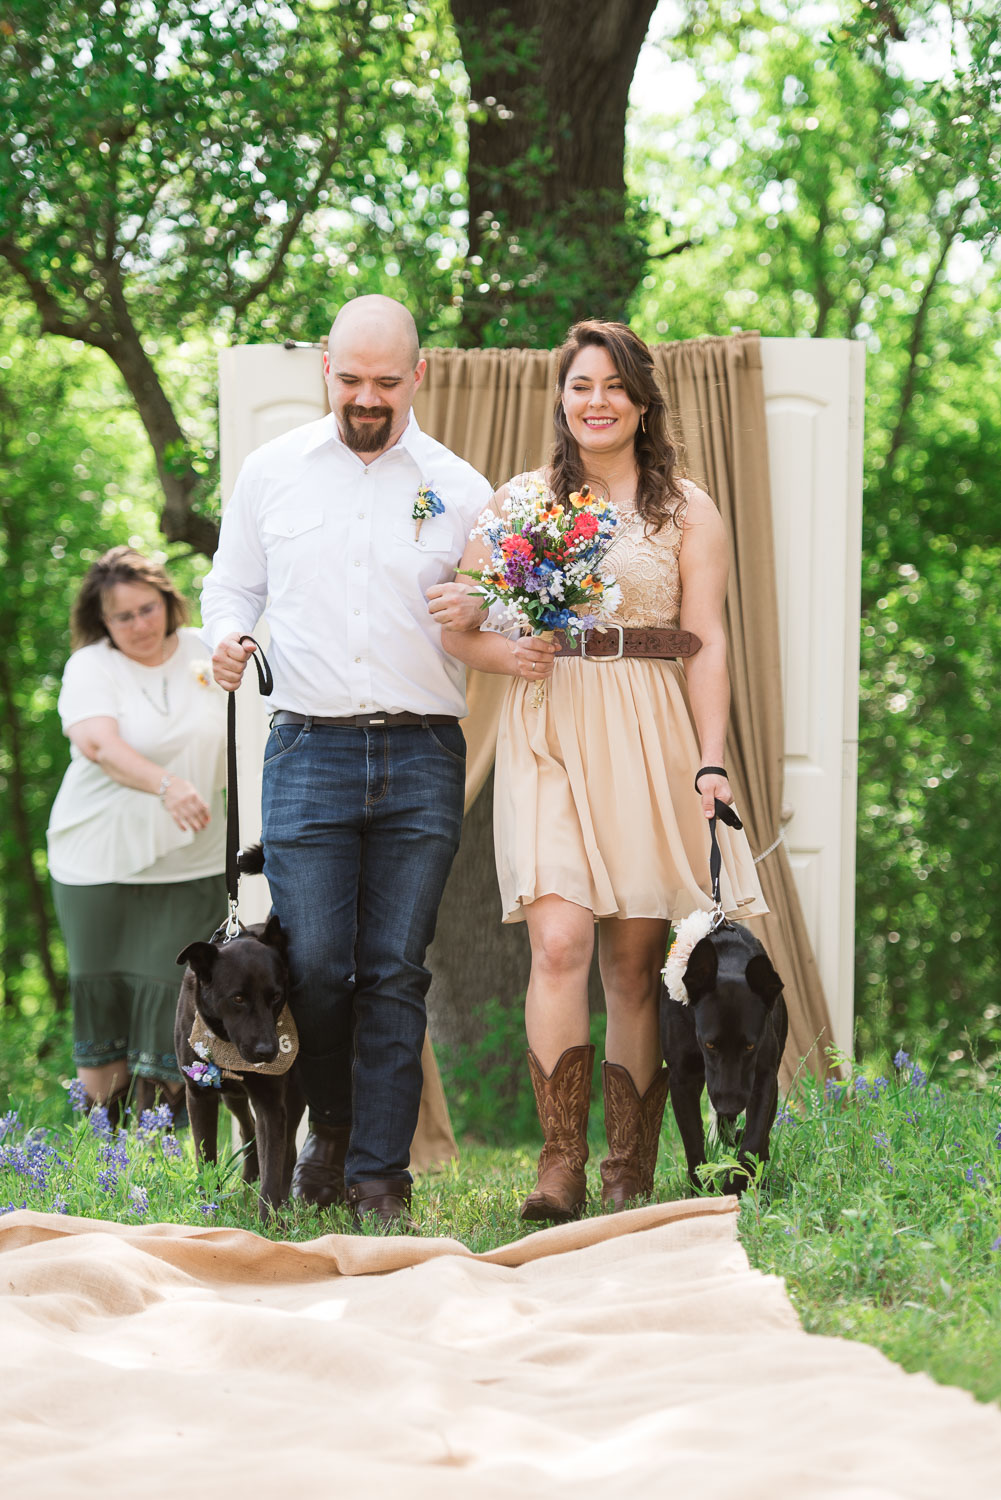 31 Best man and Maid of Honor walk the dogs down the aisle at this Texas Farmland wedding.jpg